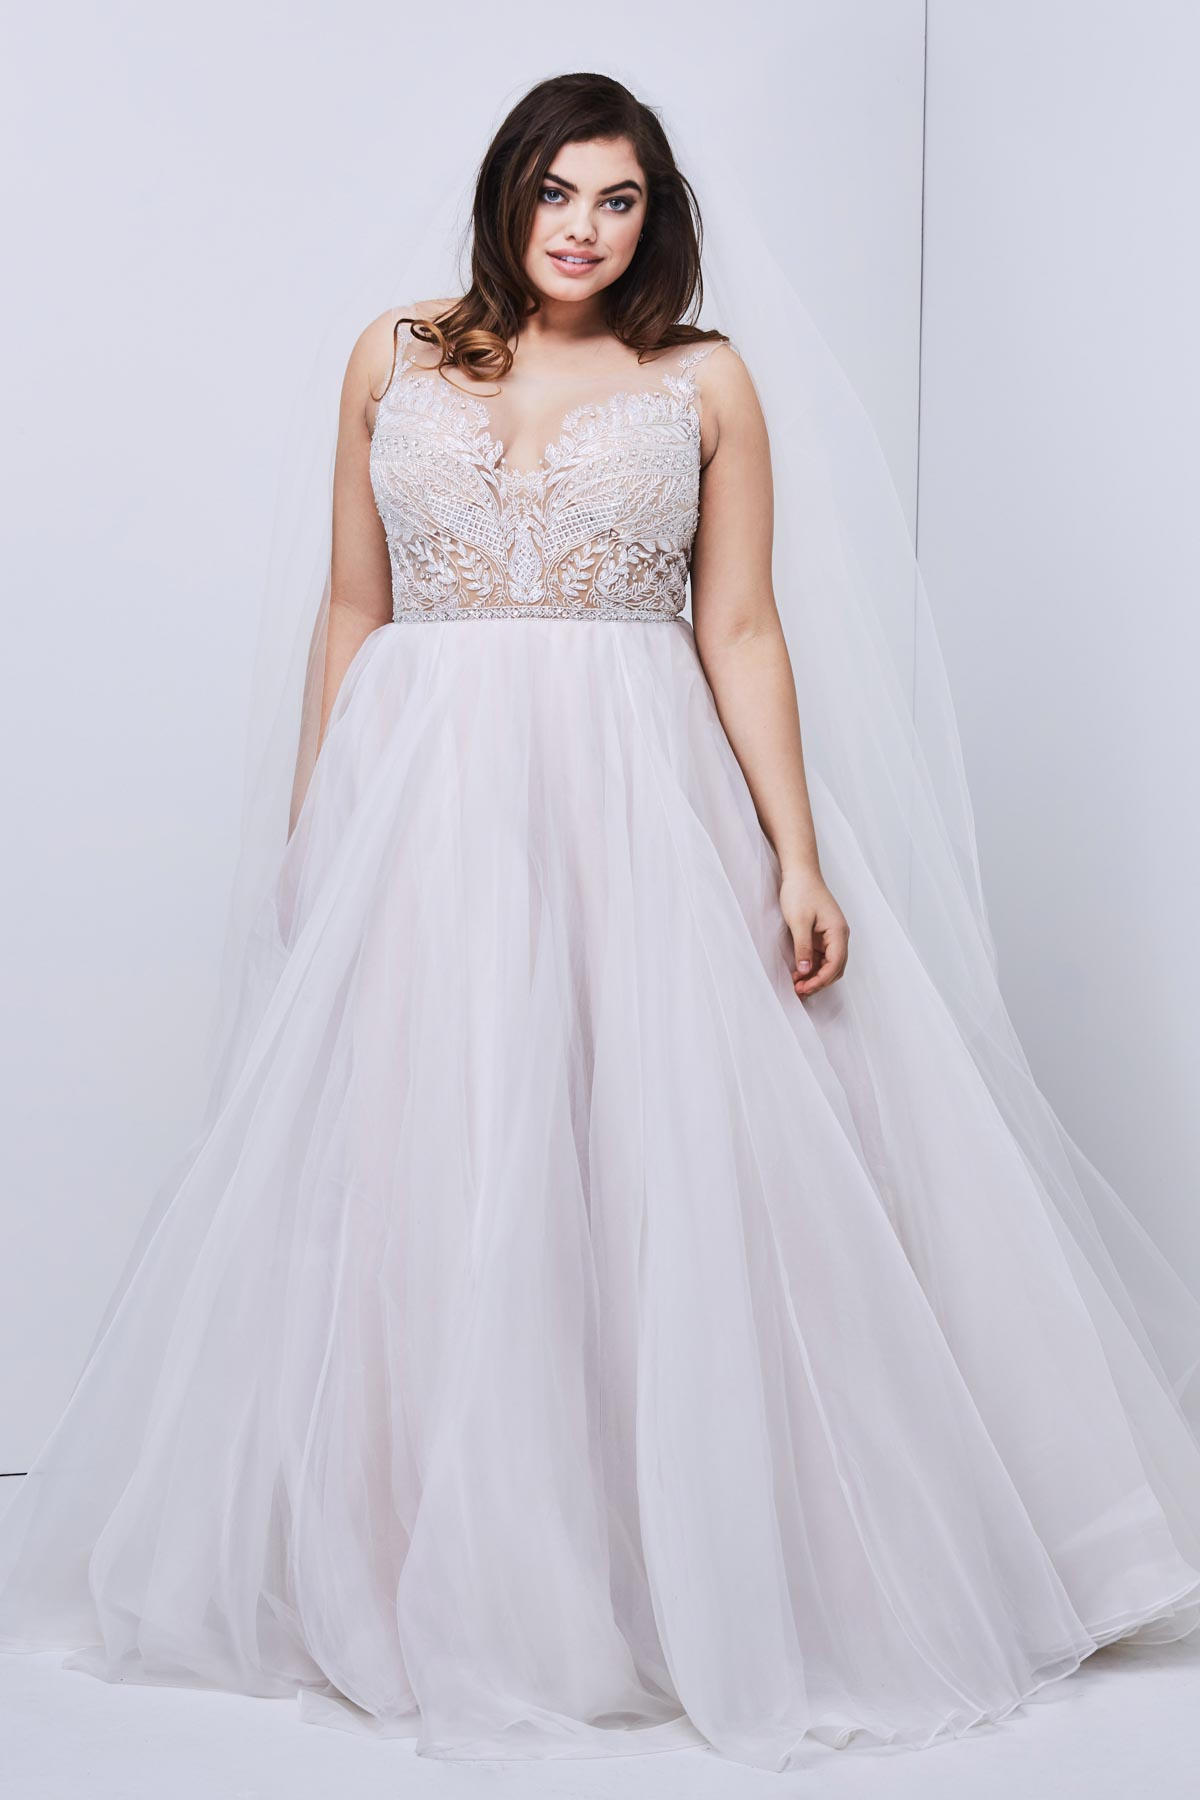 22 Designer Plus-Size Wedding Dresses That Prove Your Body ...